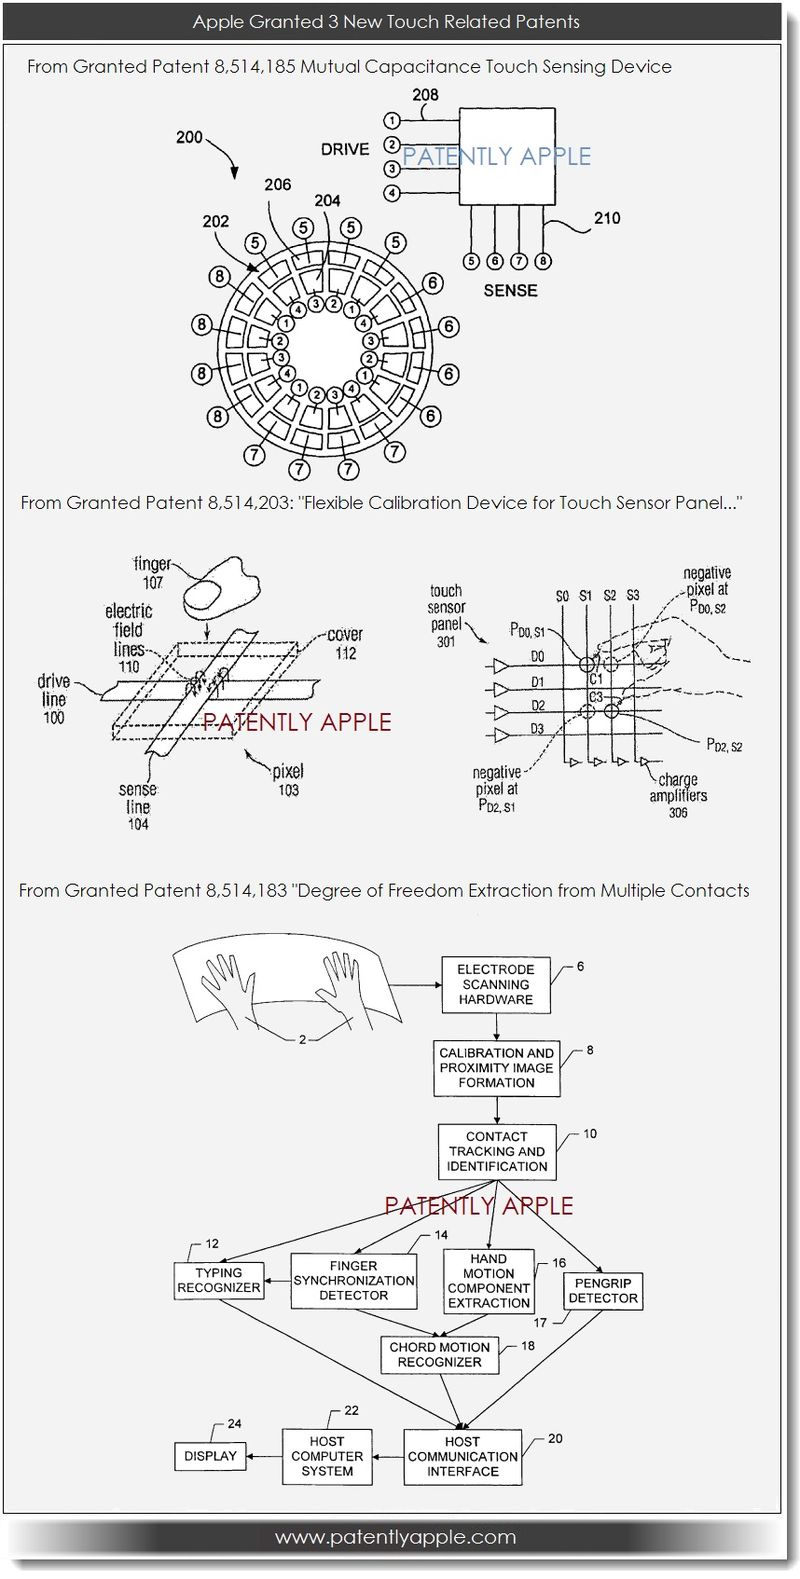 3. Apple is granted 3 new touch related patents